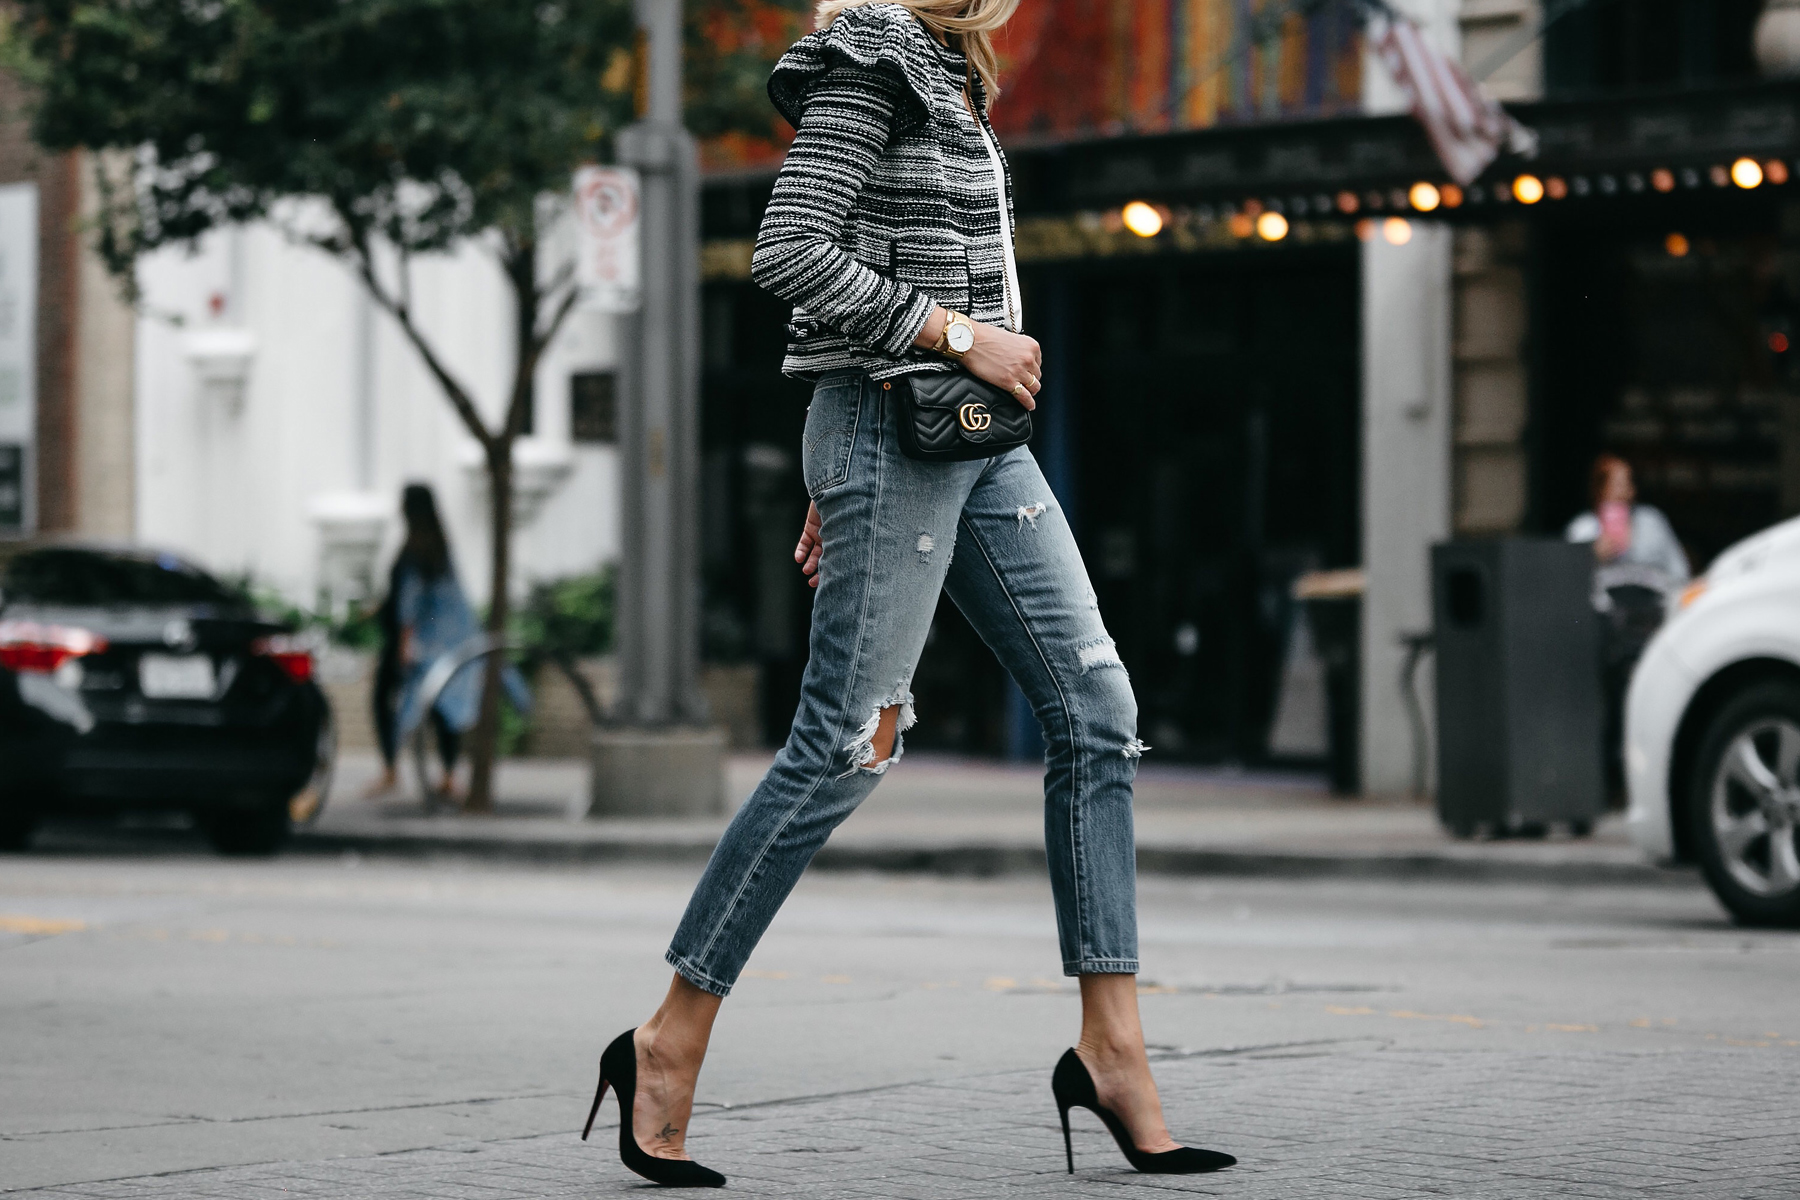 Club Monaco Tweed Jacket Denim Ripped Jeans Gucci Mini Marmont Handbag Black Pumps Fashion Jackson Dallas Blogger Fashion Blogger Street Style